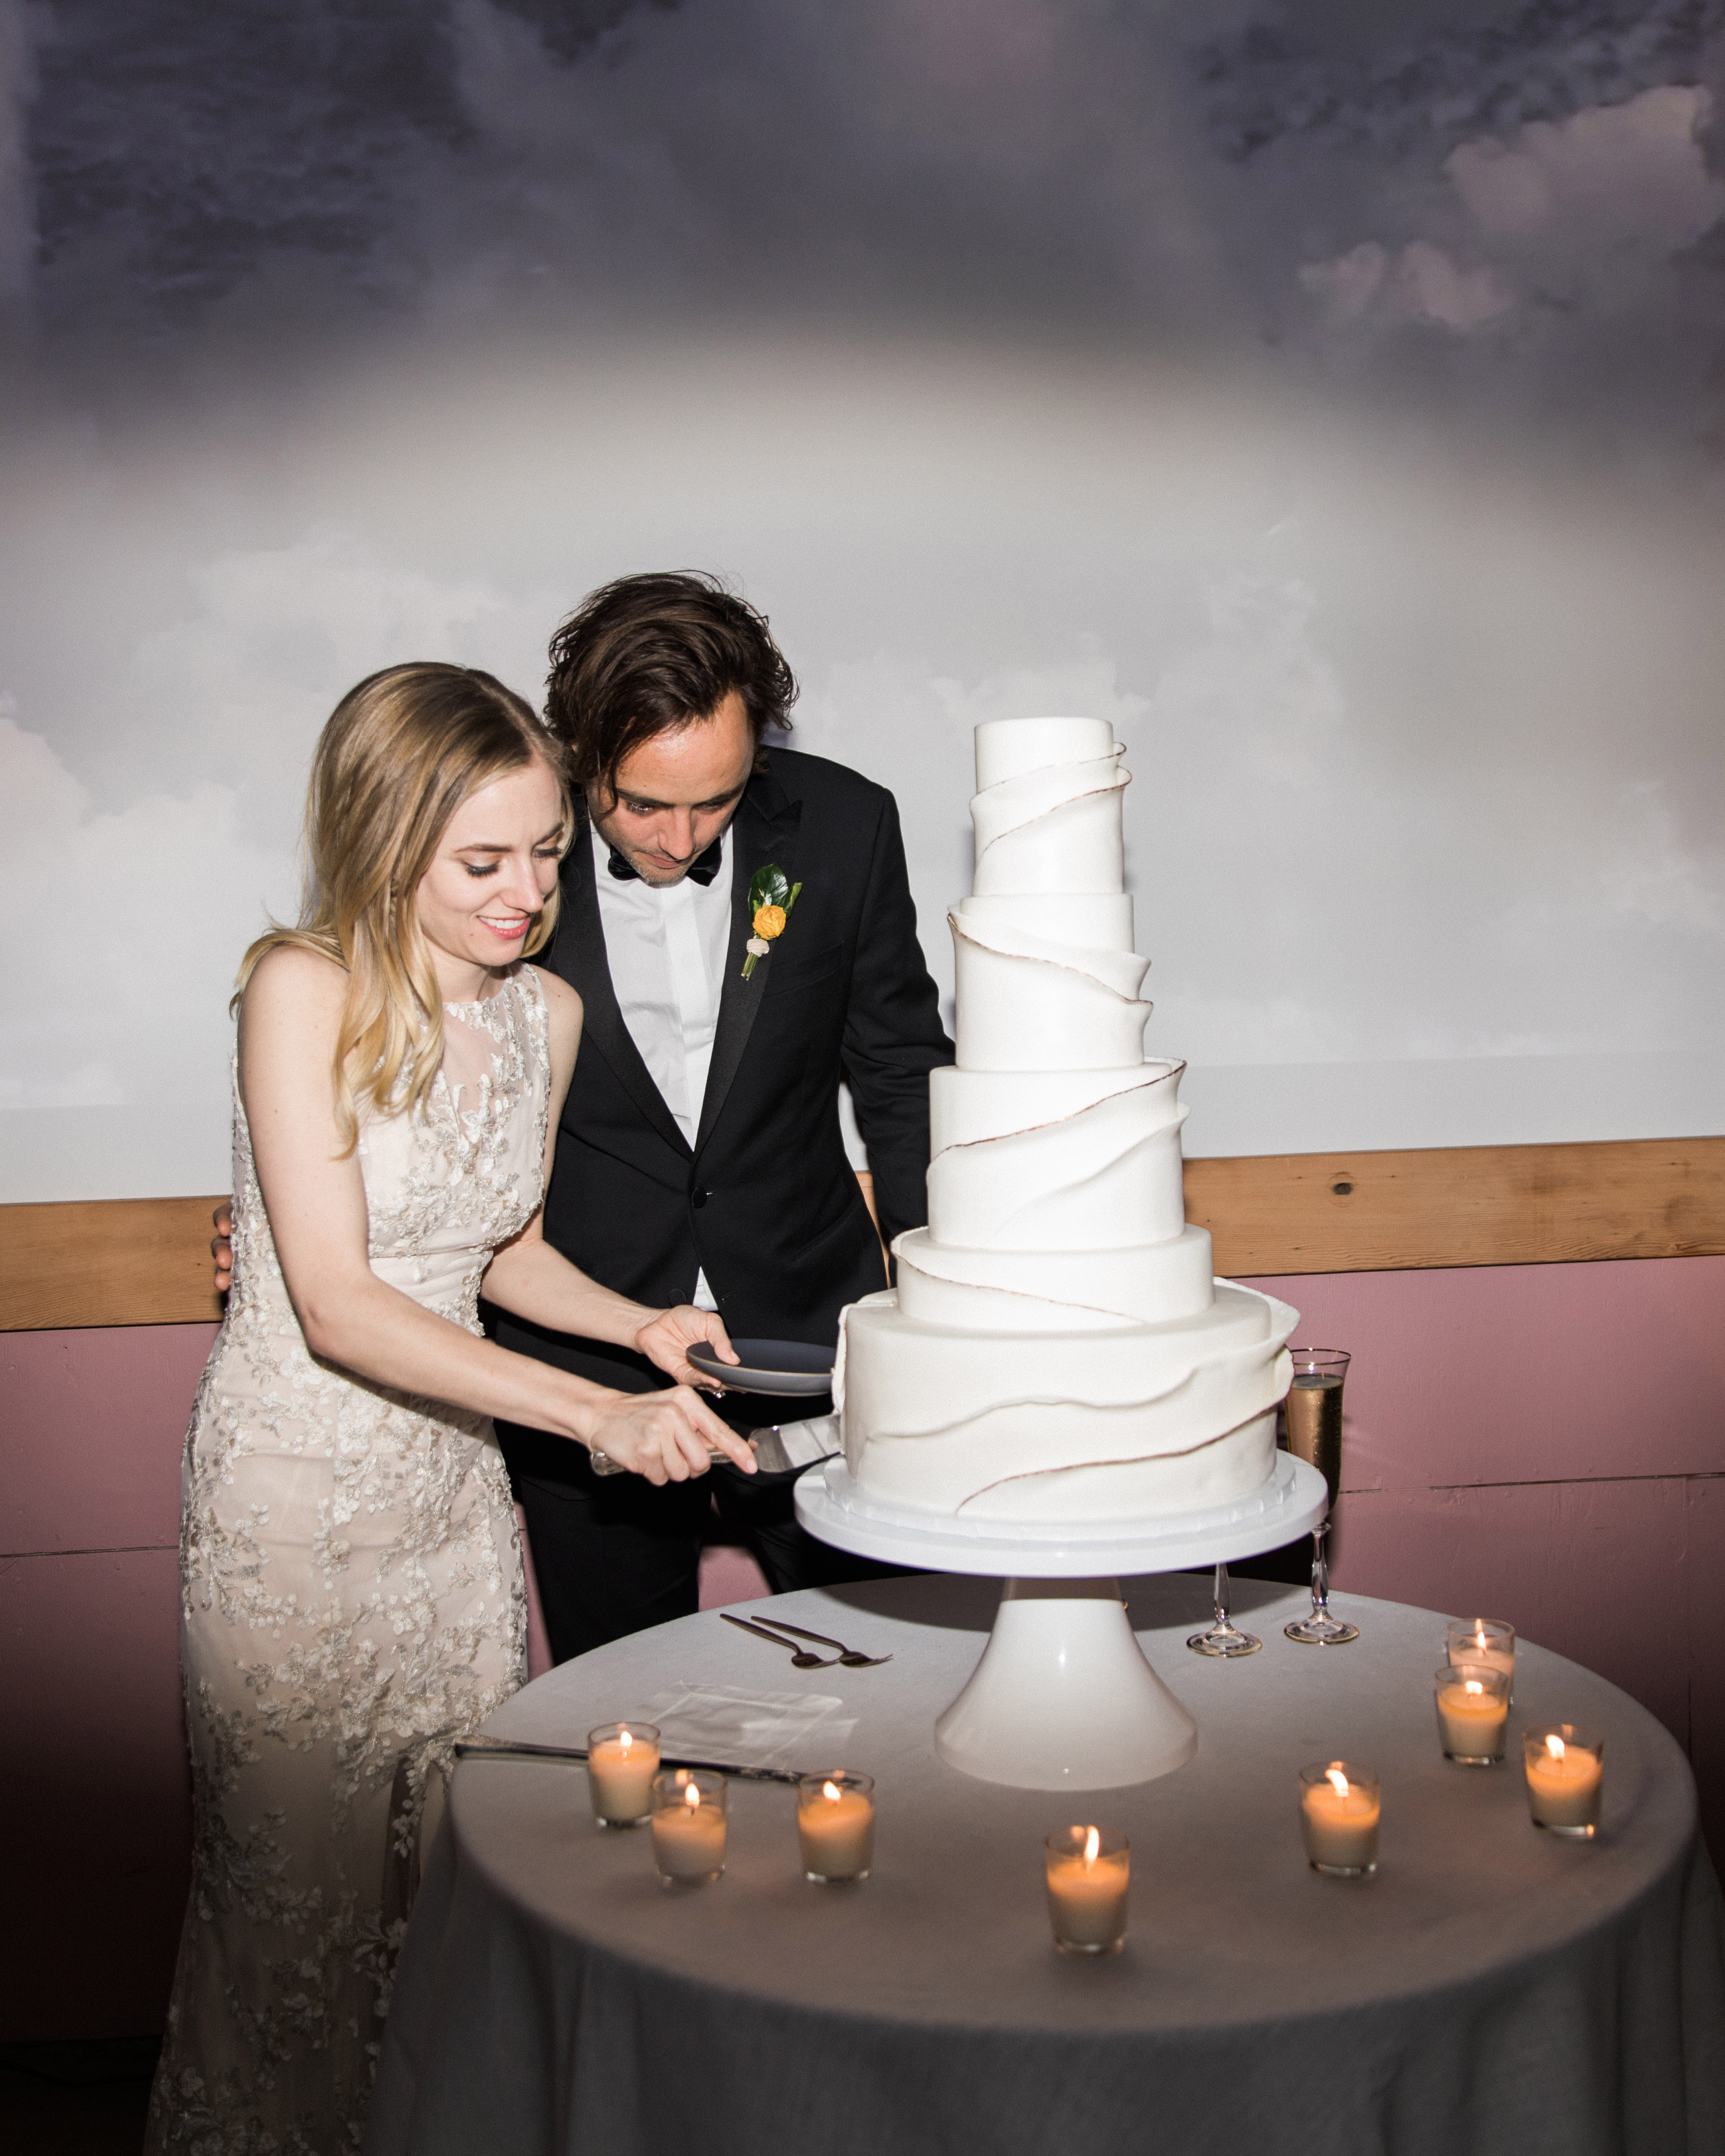 bride groom slicing tiered wedding cake surrounded by small candles